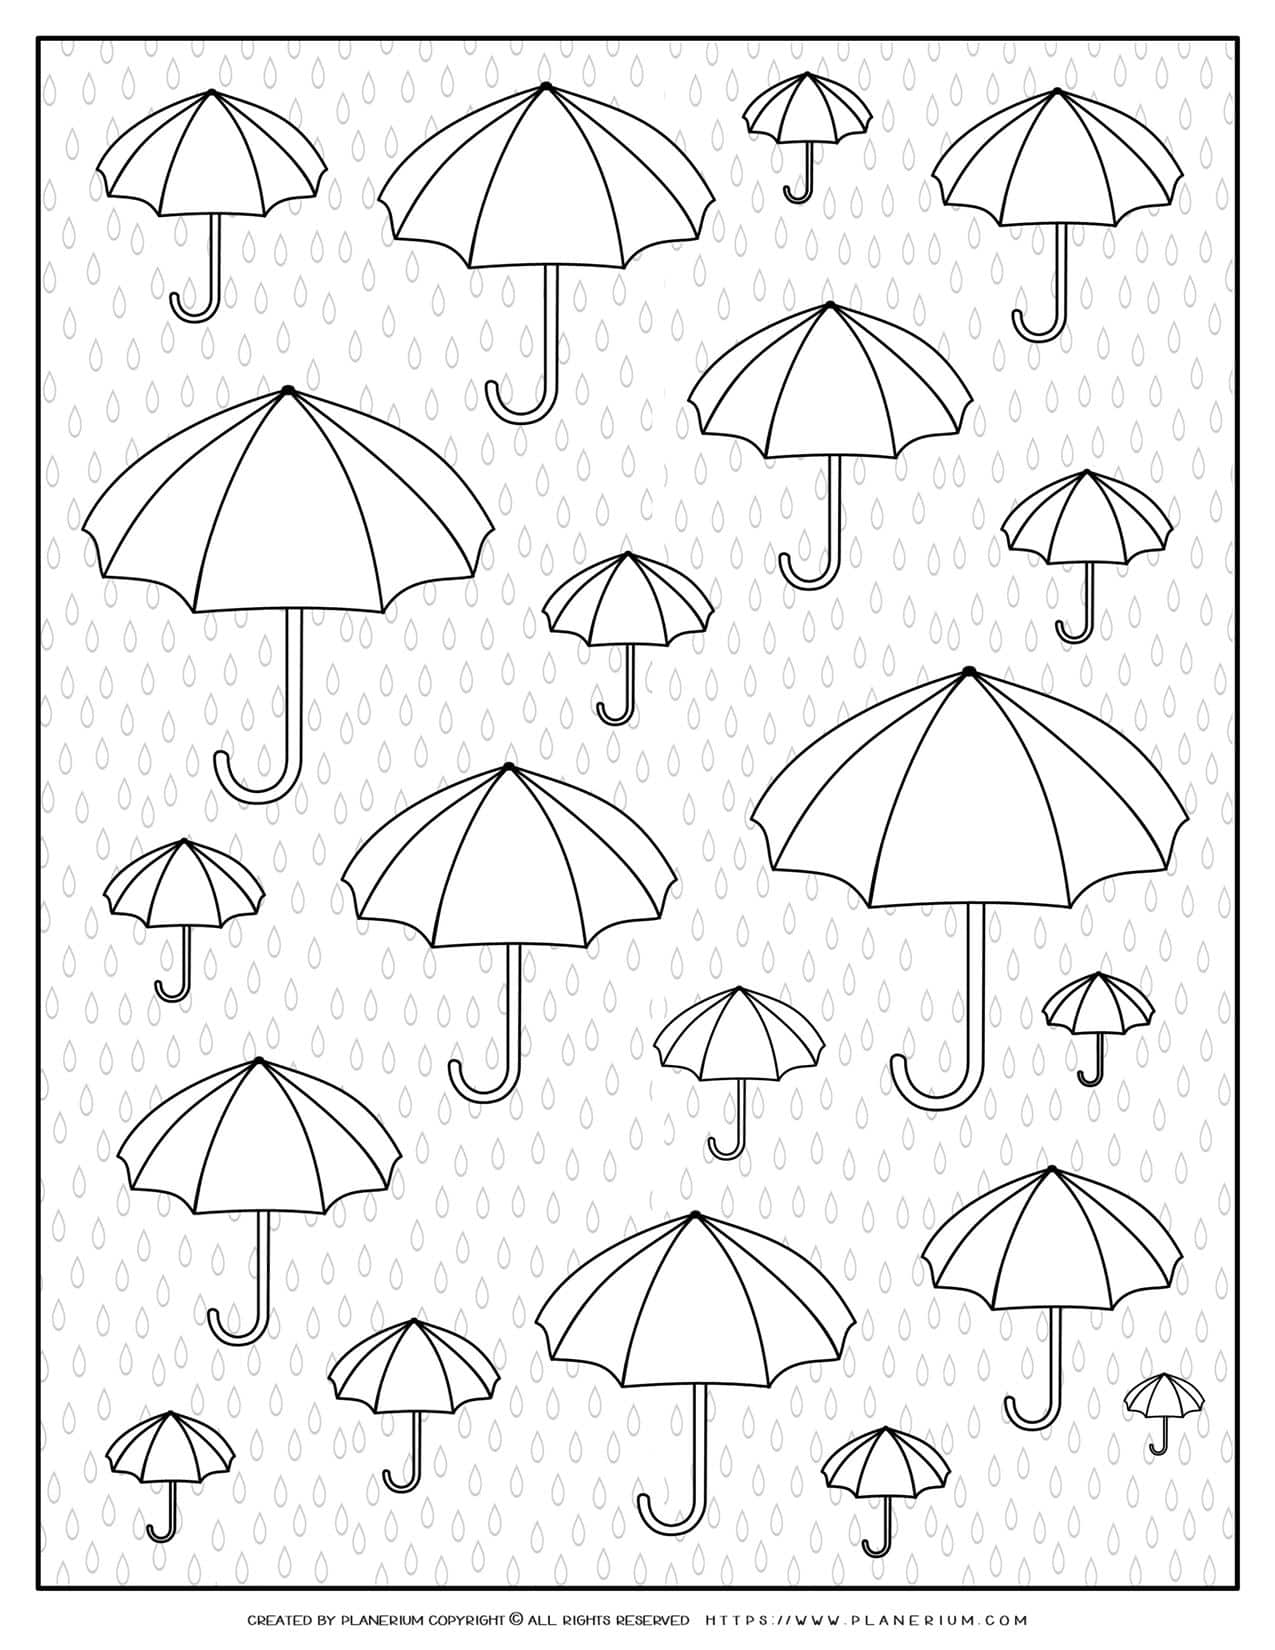 Adult Coloring Pages - Umbrellas and Raindrops | Planerium